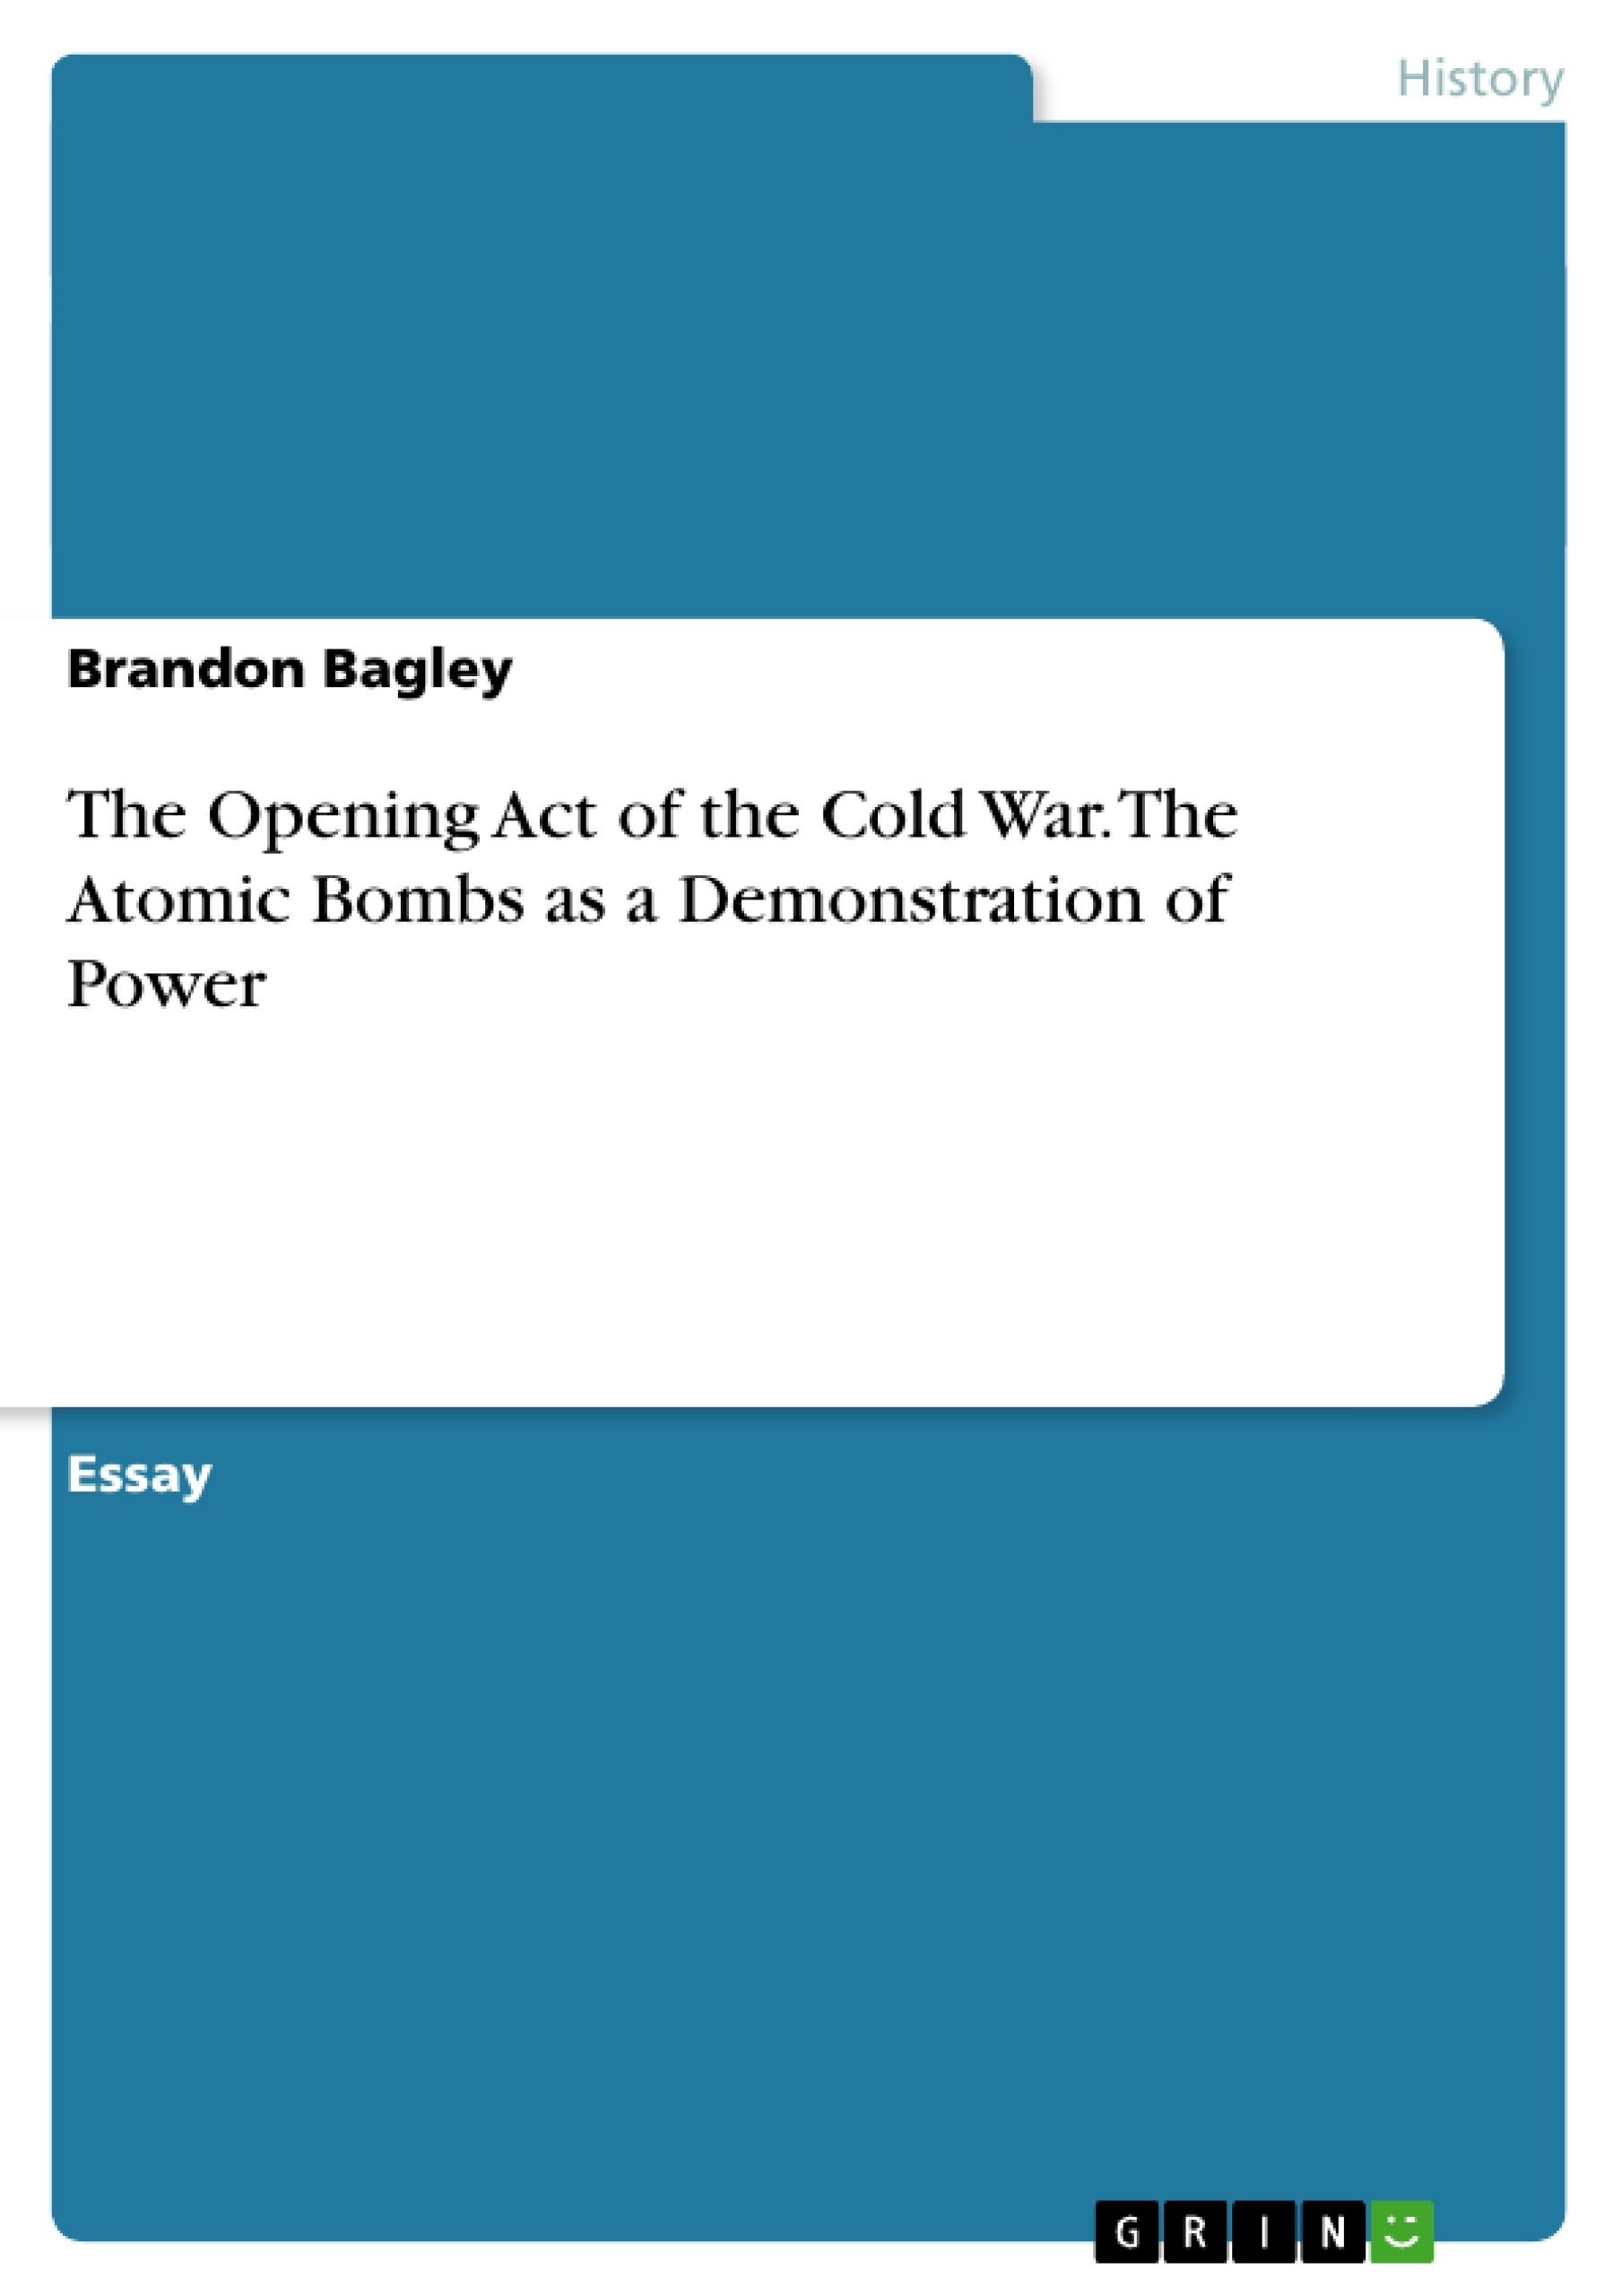 Title: The Opening Act of the Cold War. The Atomic Bombs as a Demonstration of Power